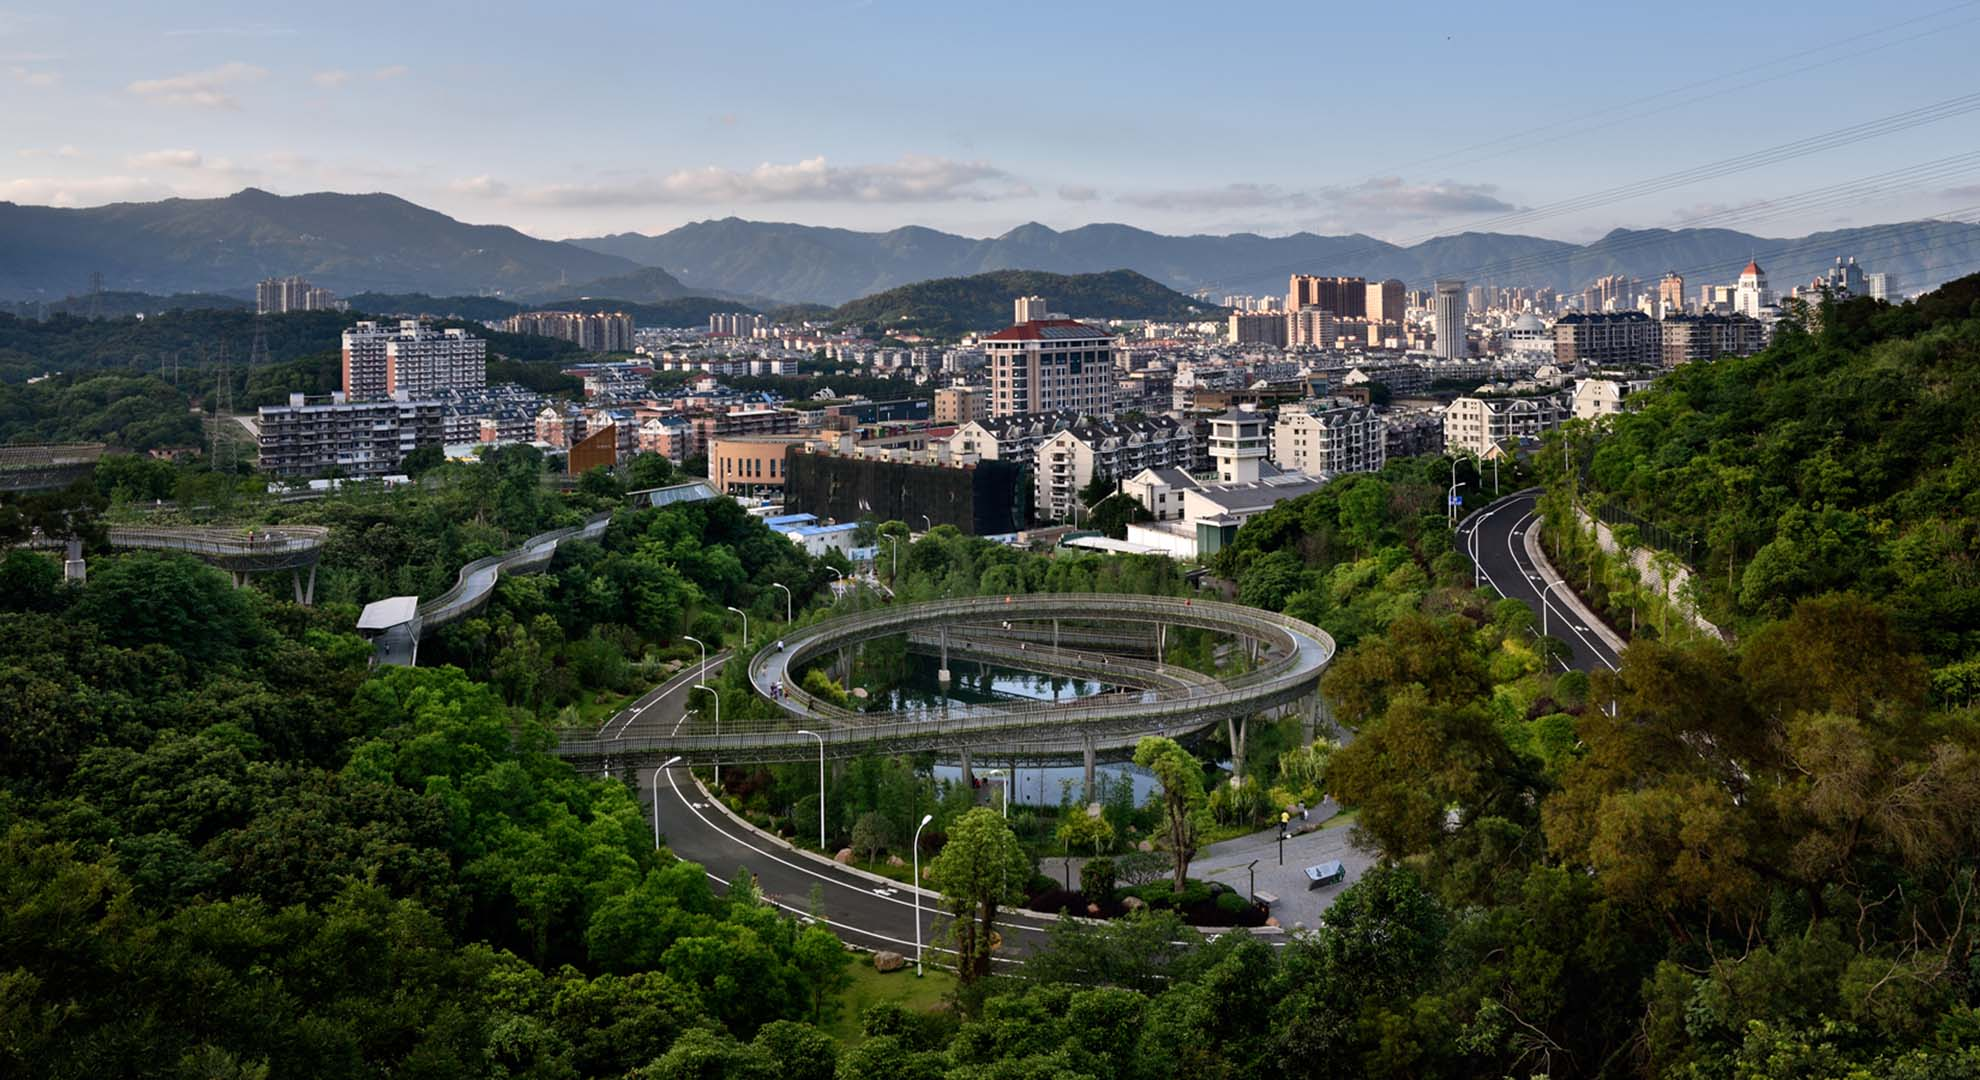 A view of a landscaping work focused on pedestrian movement system: the Trans-Urban Connector in Fuzhou, China